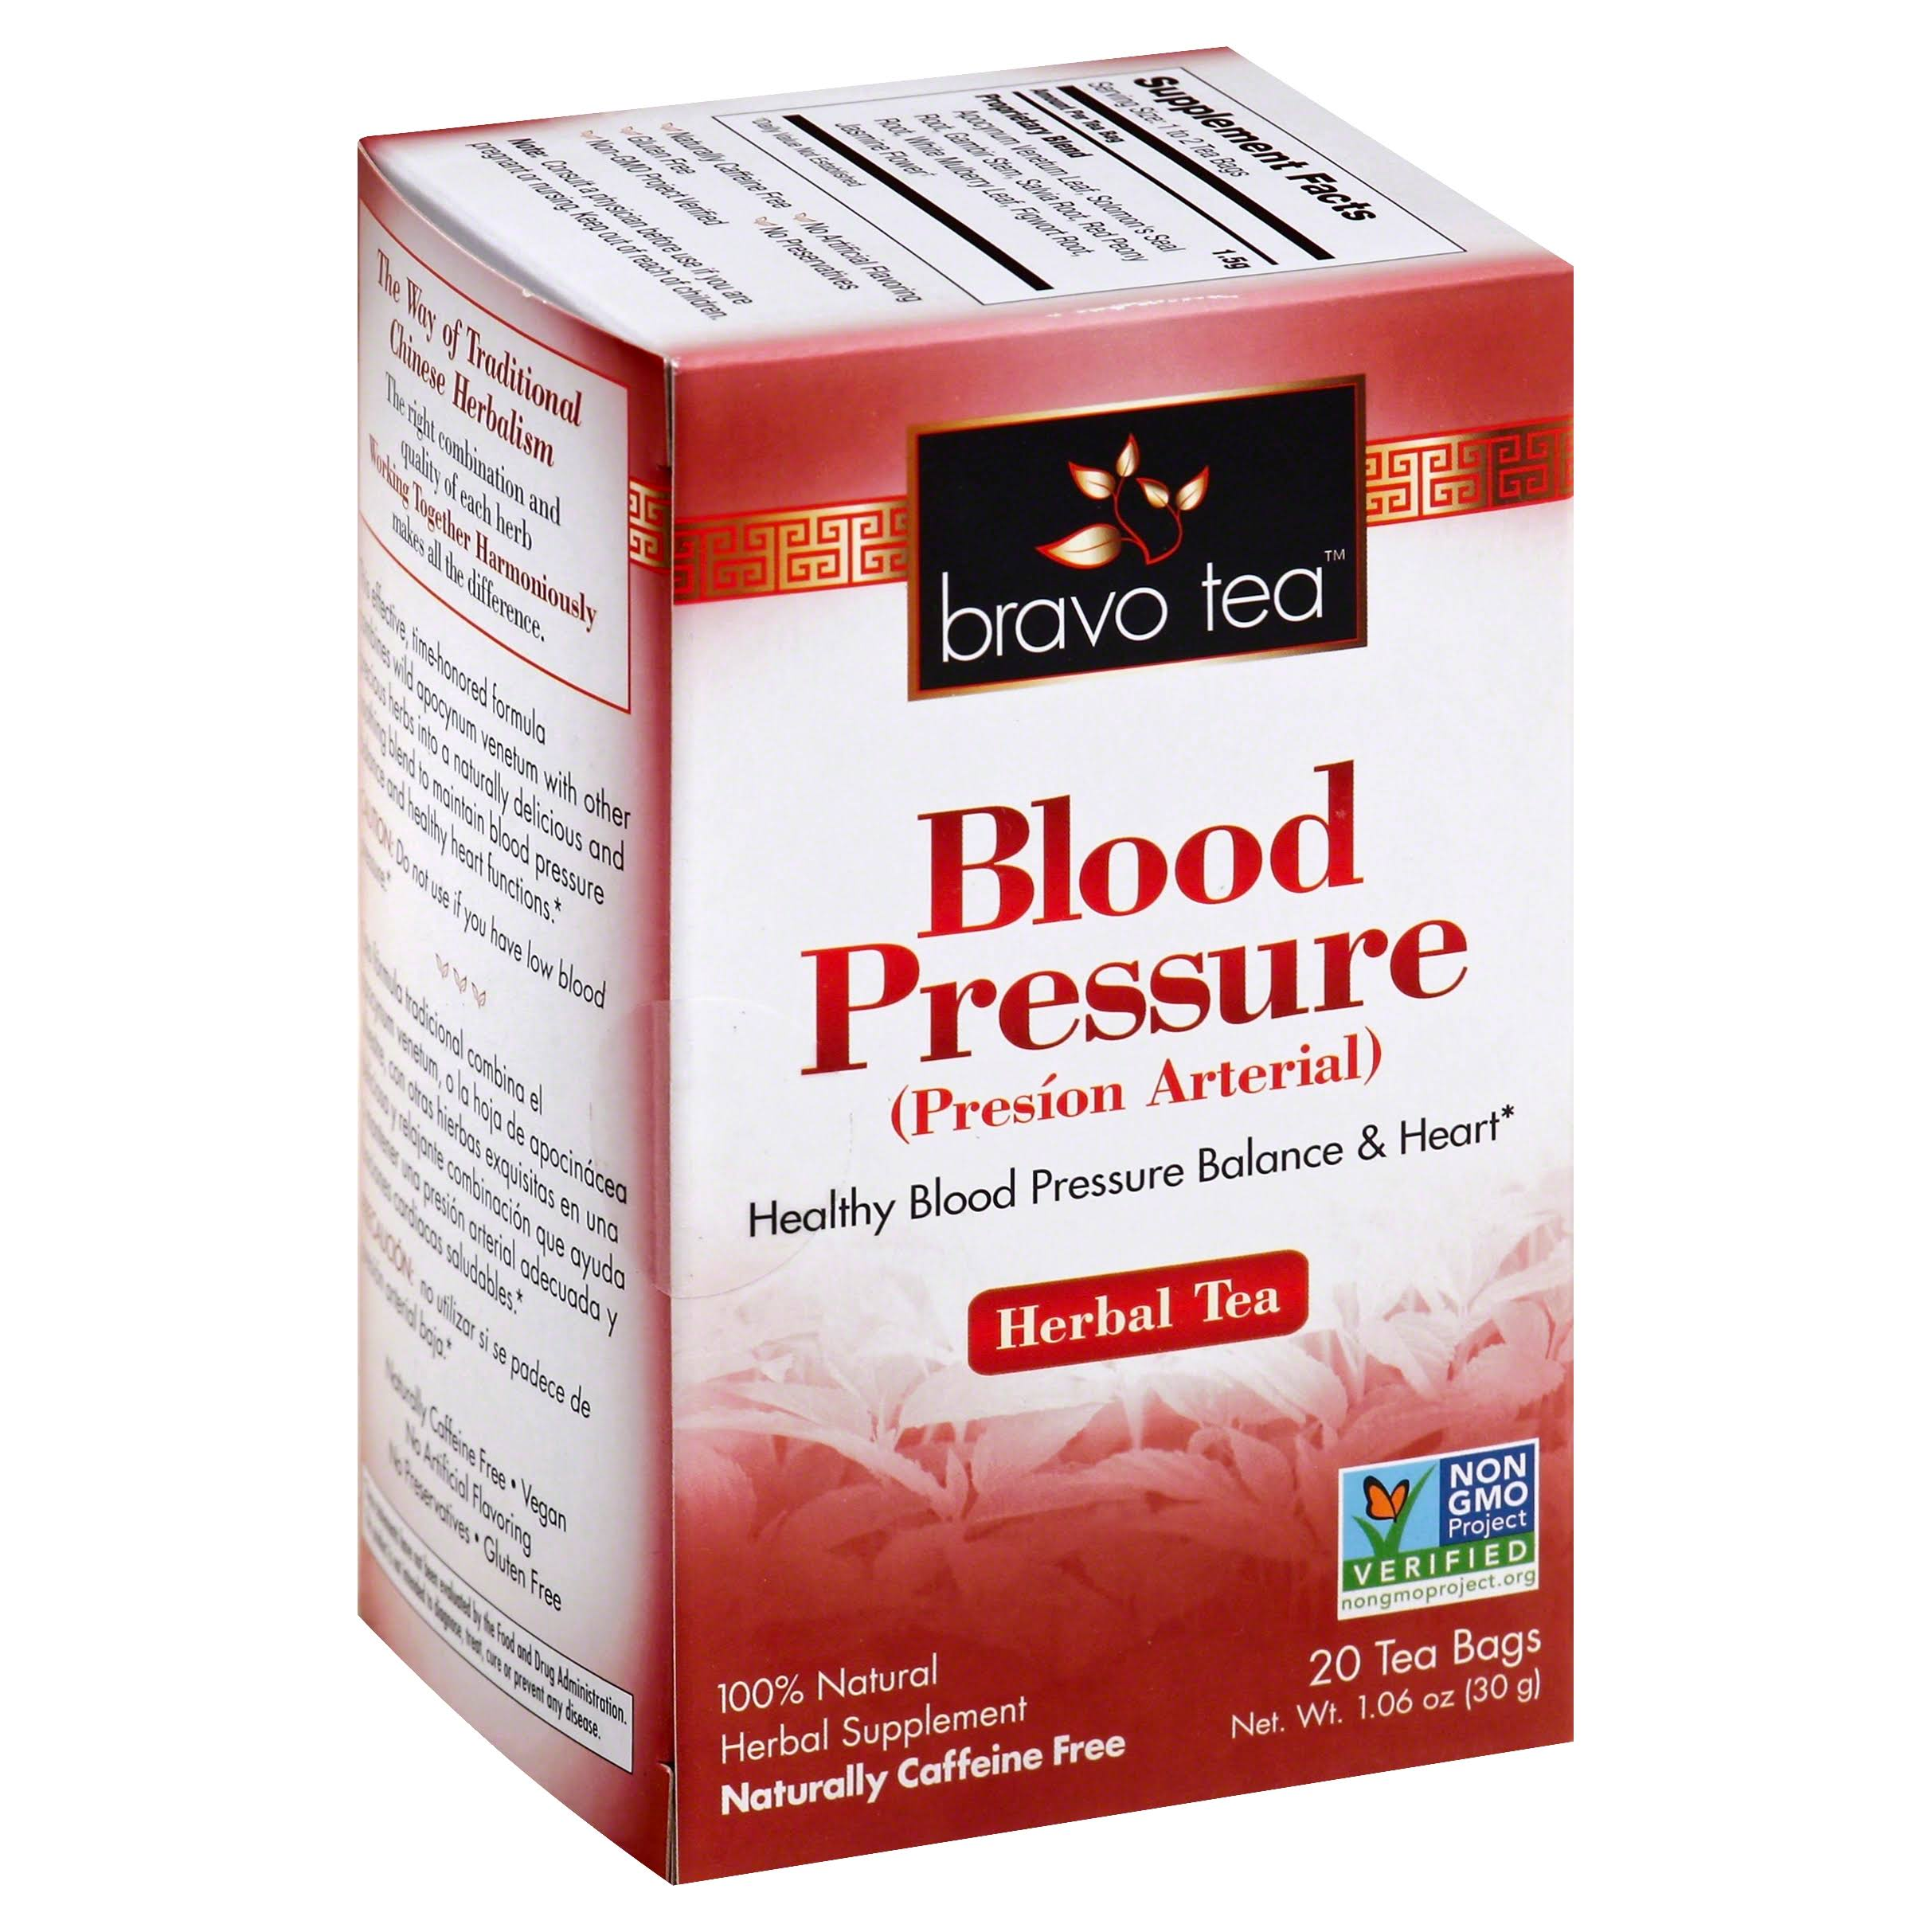 Bravo Tea Blood Pressure Herbal Tea - Caffeine Free, 20 Tea Bags